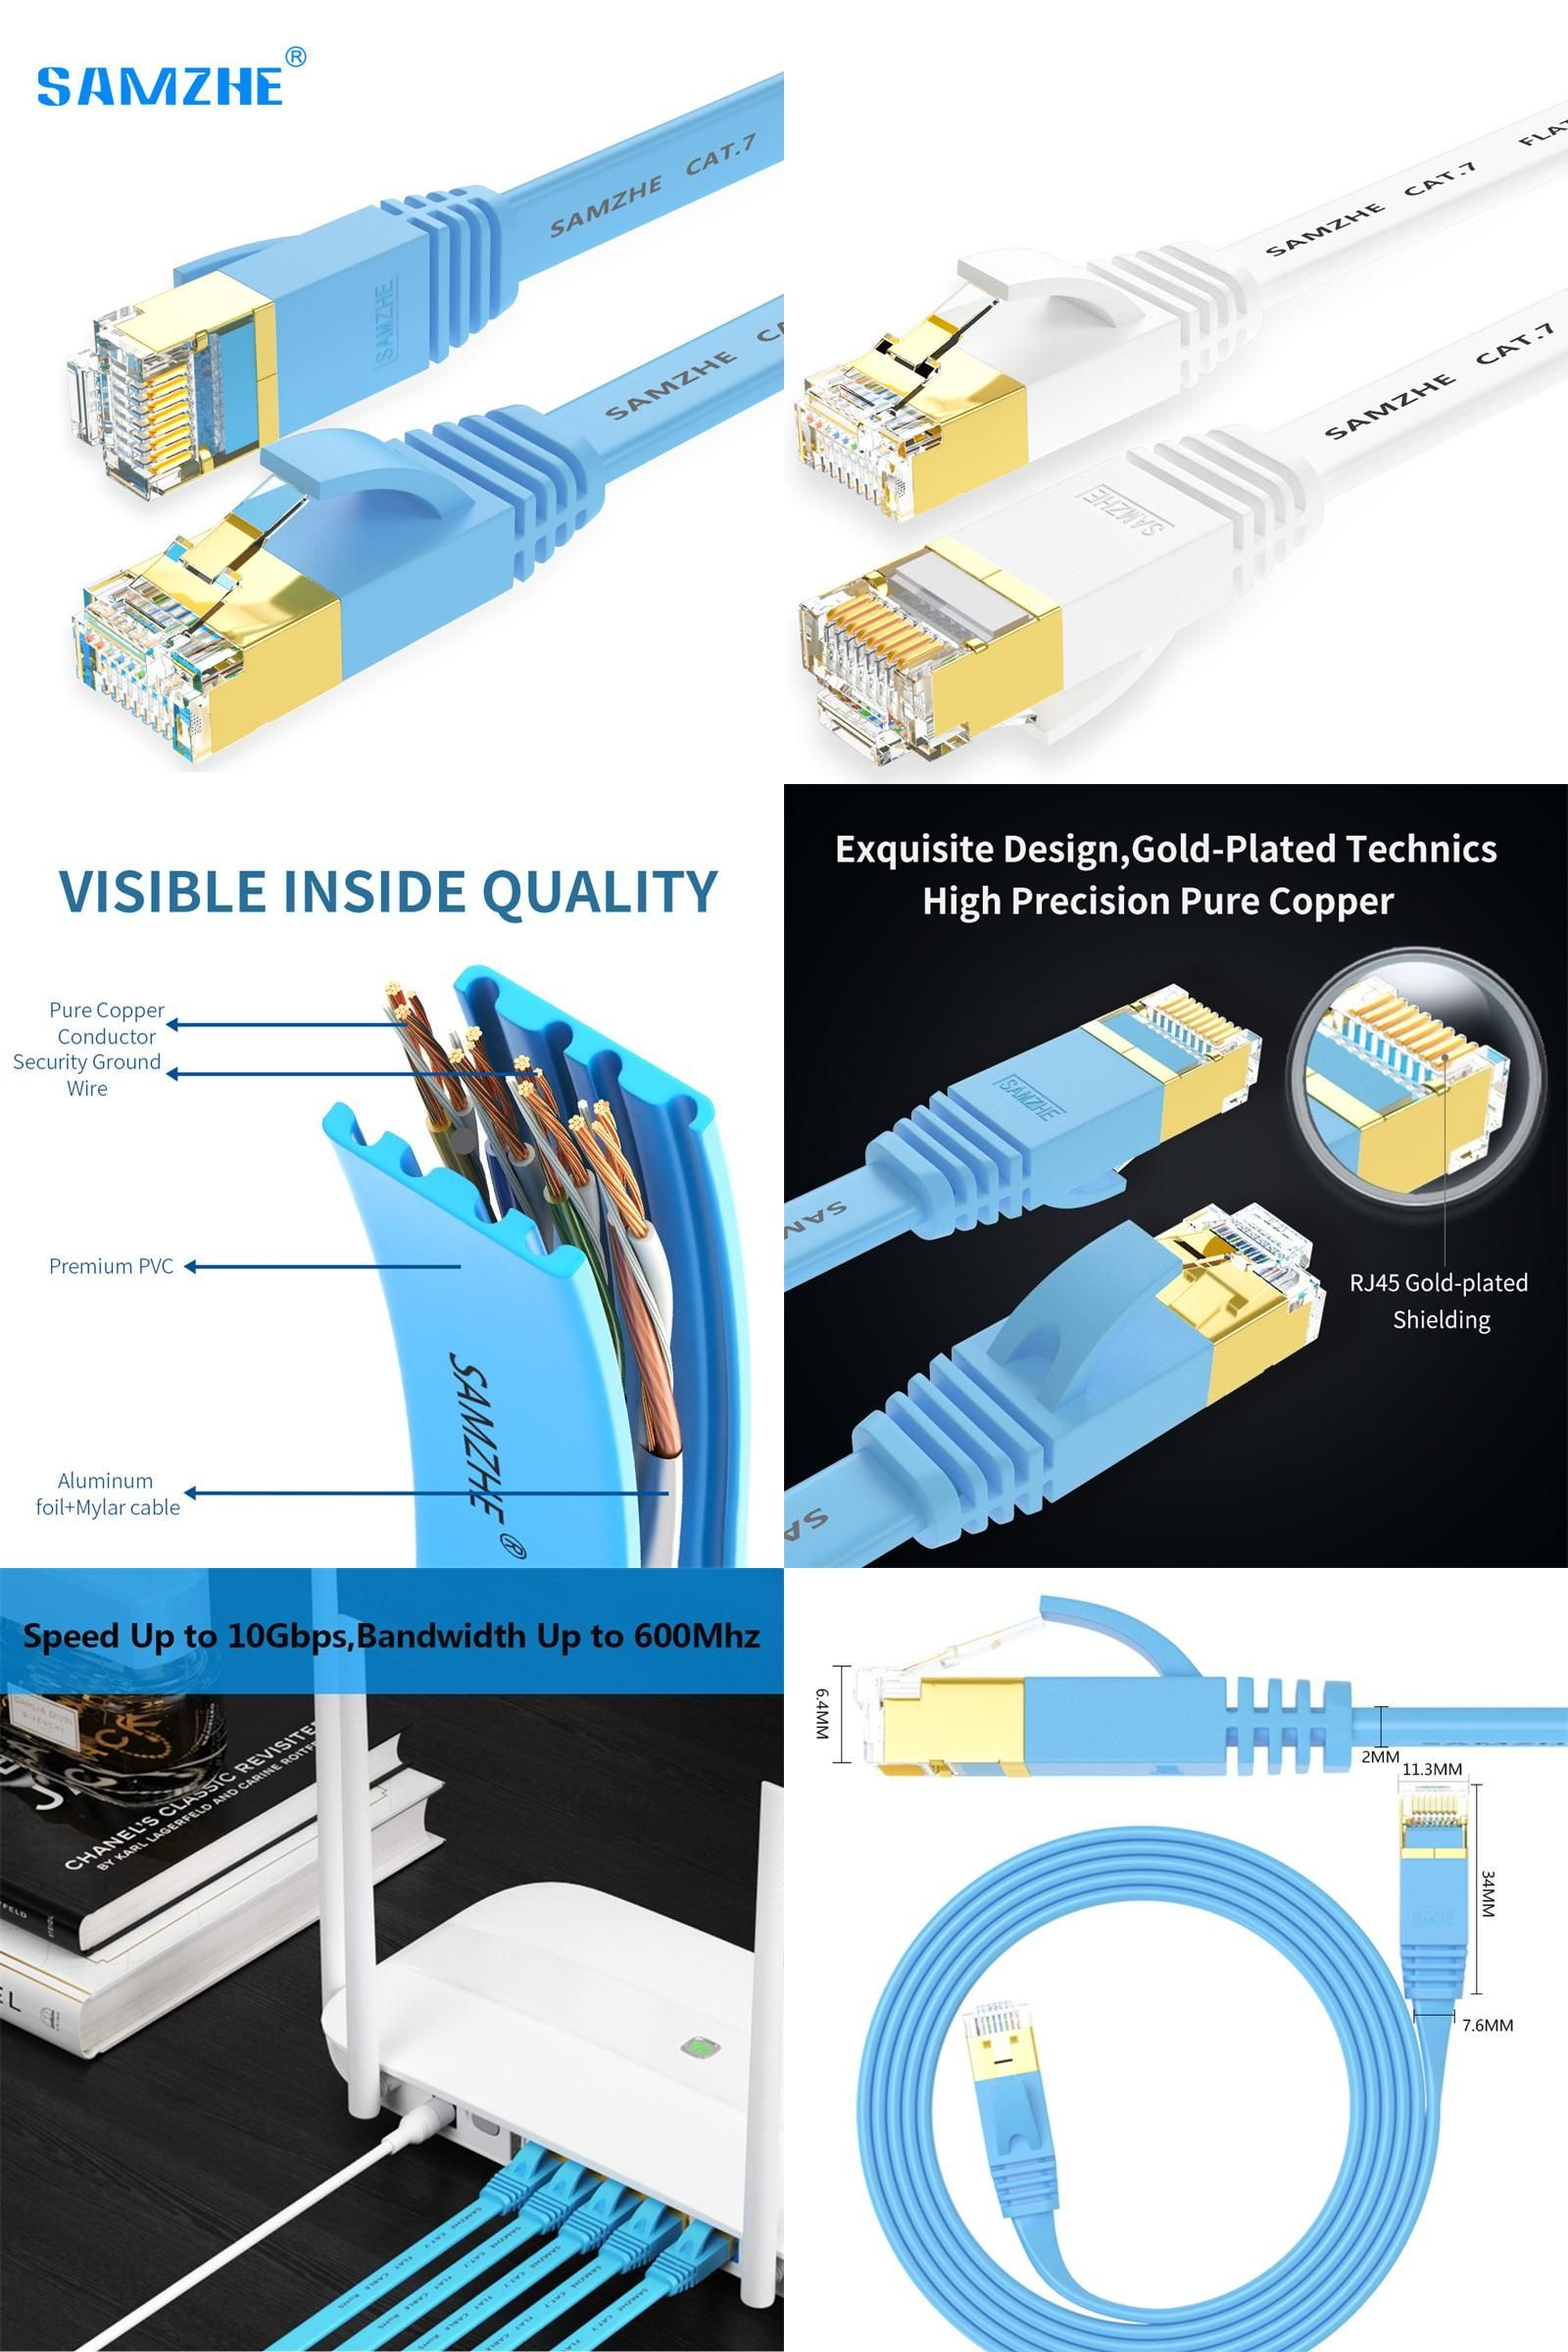 Visit to Buy] SAMZHE Flat Cat7 Ethernet Patch Cable - RJ45 Computer ...